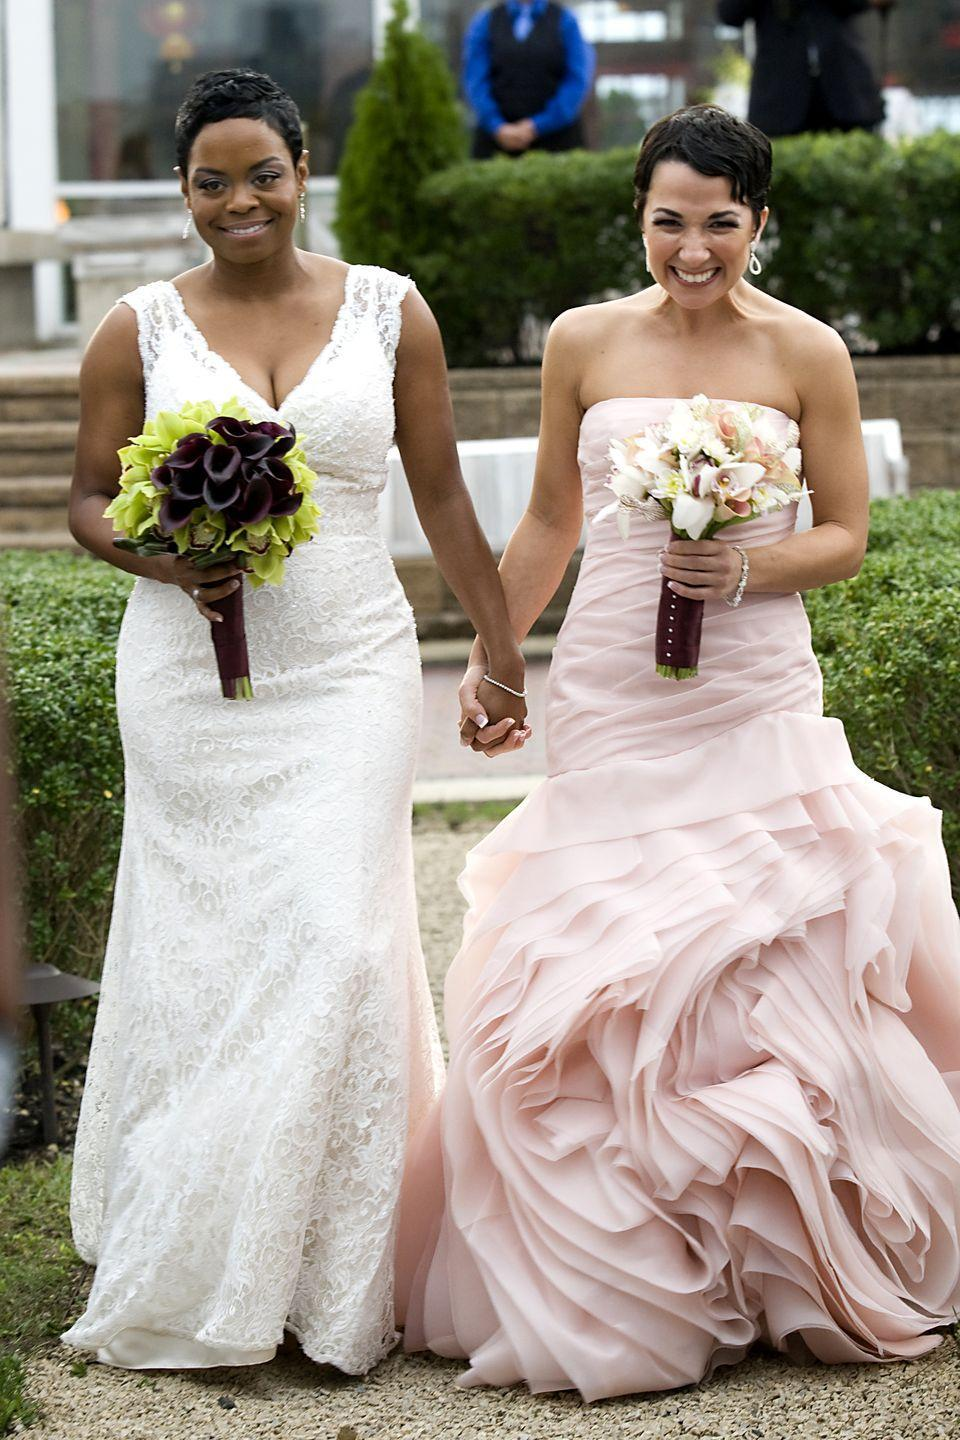 <p>The brides picked the perfect bouquets to complement their dresses at their wedding on September 30, 2011.</p>